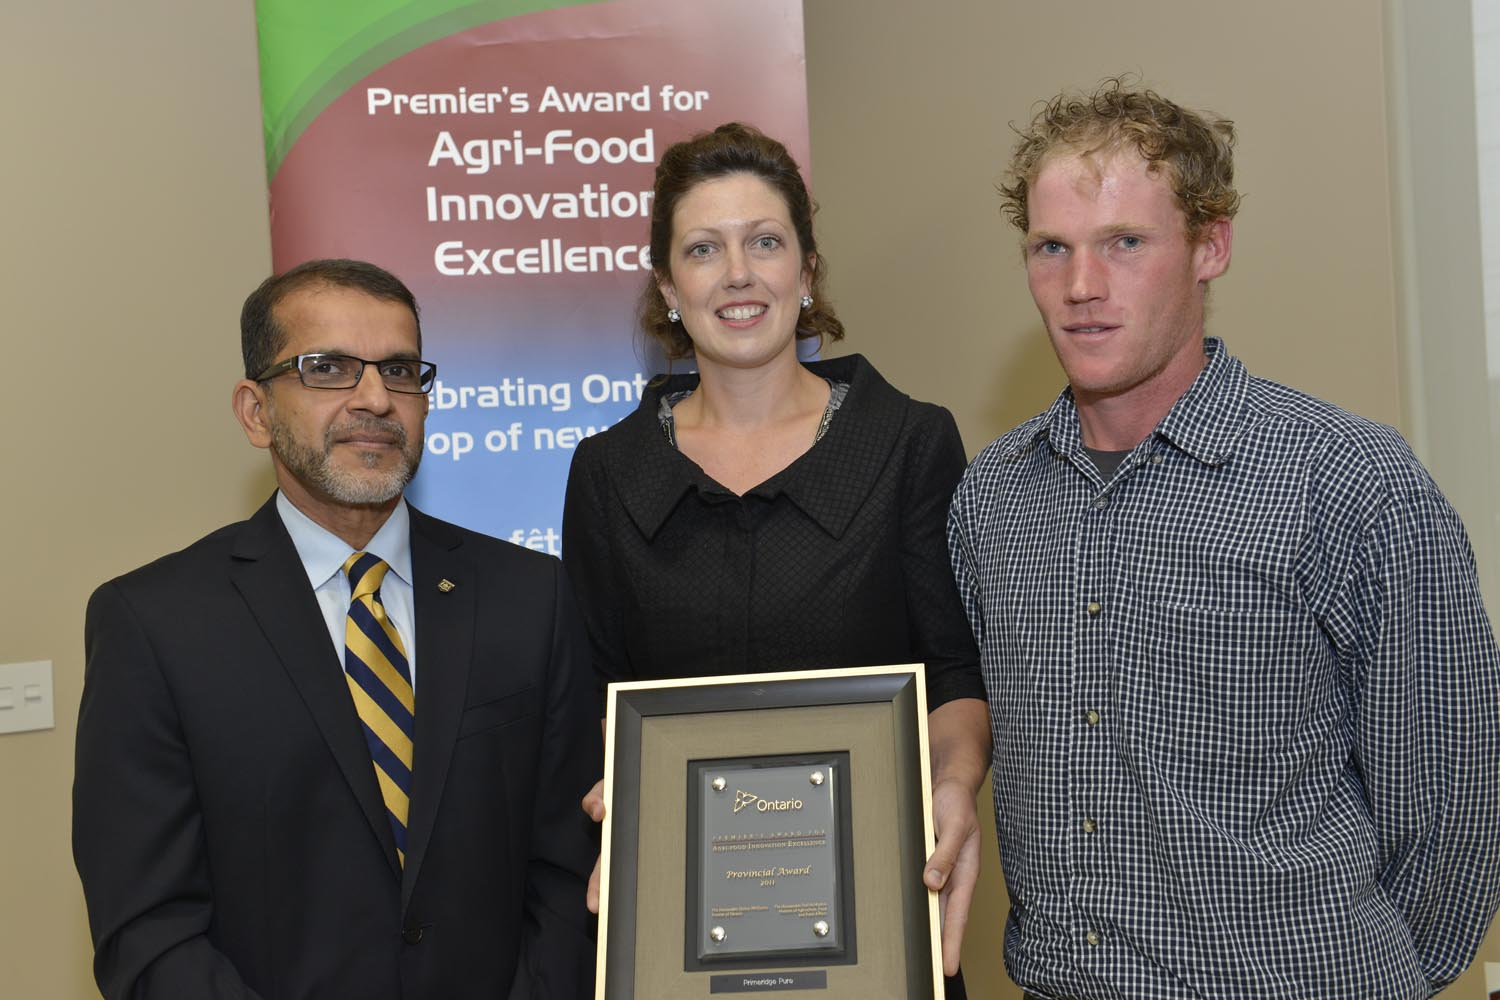 Photo of Fareed Amin, Deputy Minister, Agriculture, Food and Rural Affairs, Steacy and Scott den Haan